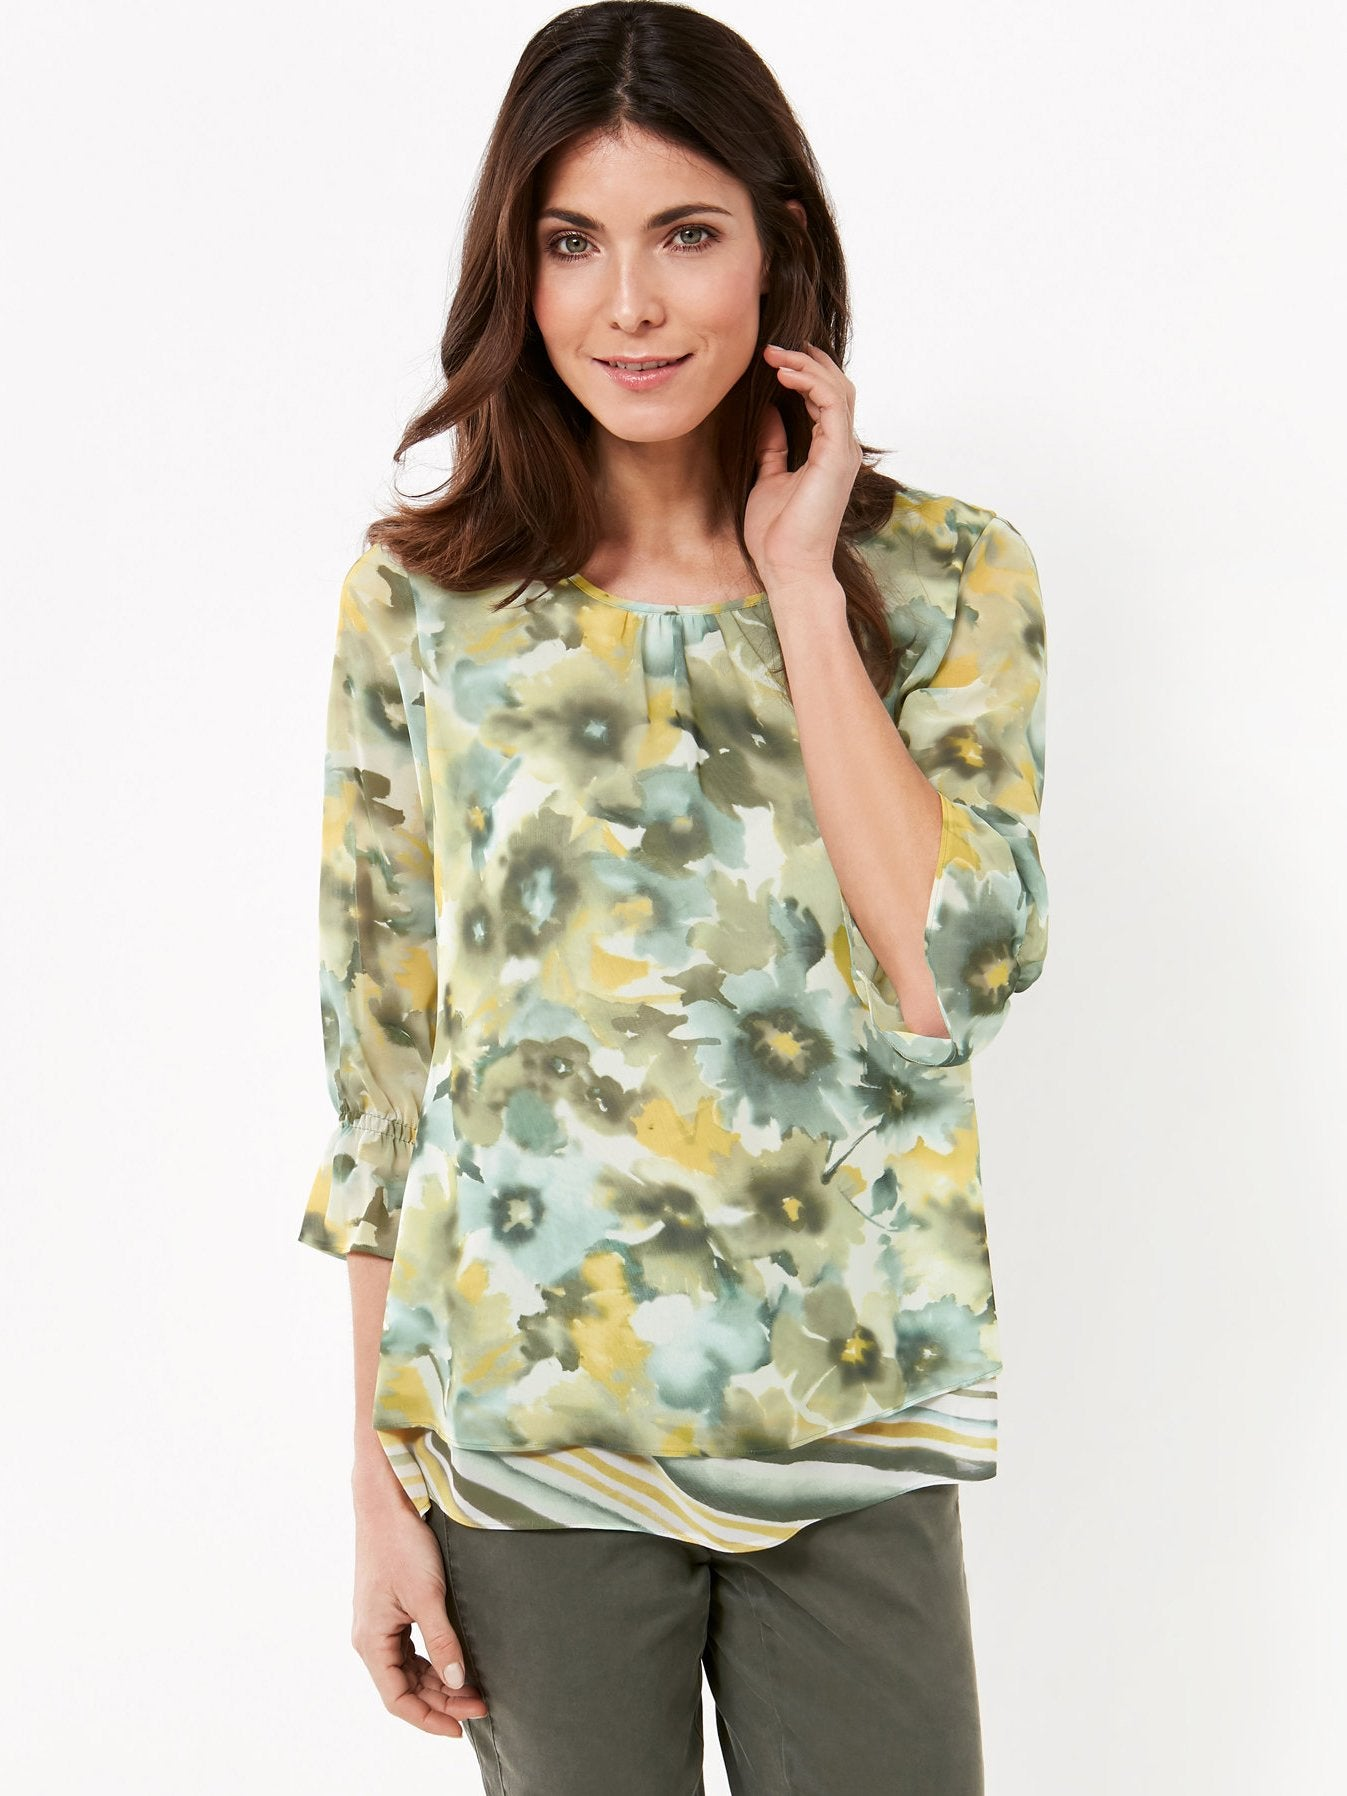 GERRY WEBER Khaki/Aqua/Yellow Floral Print Woven Top